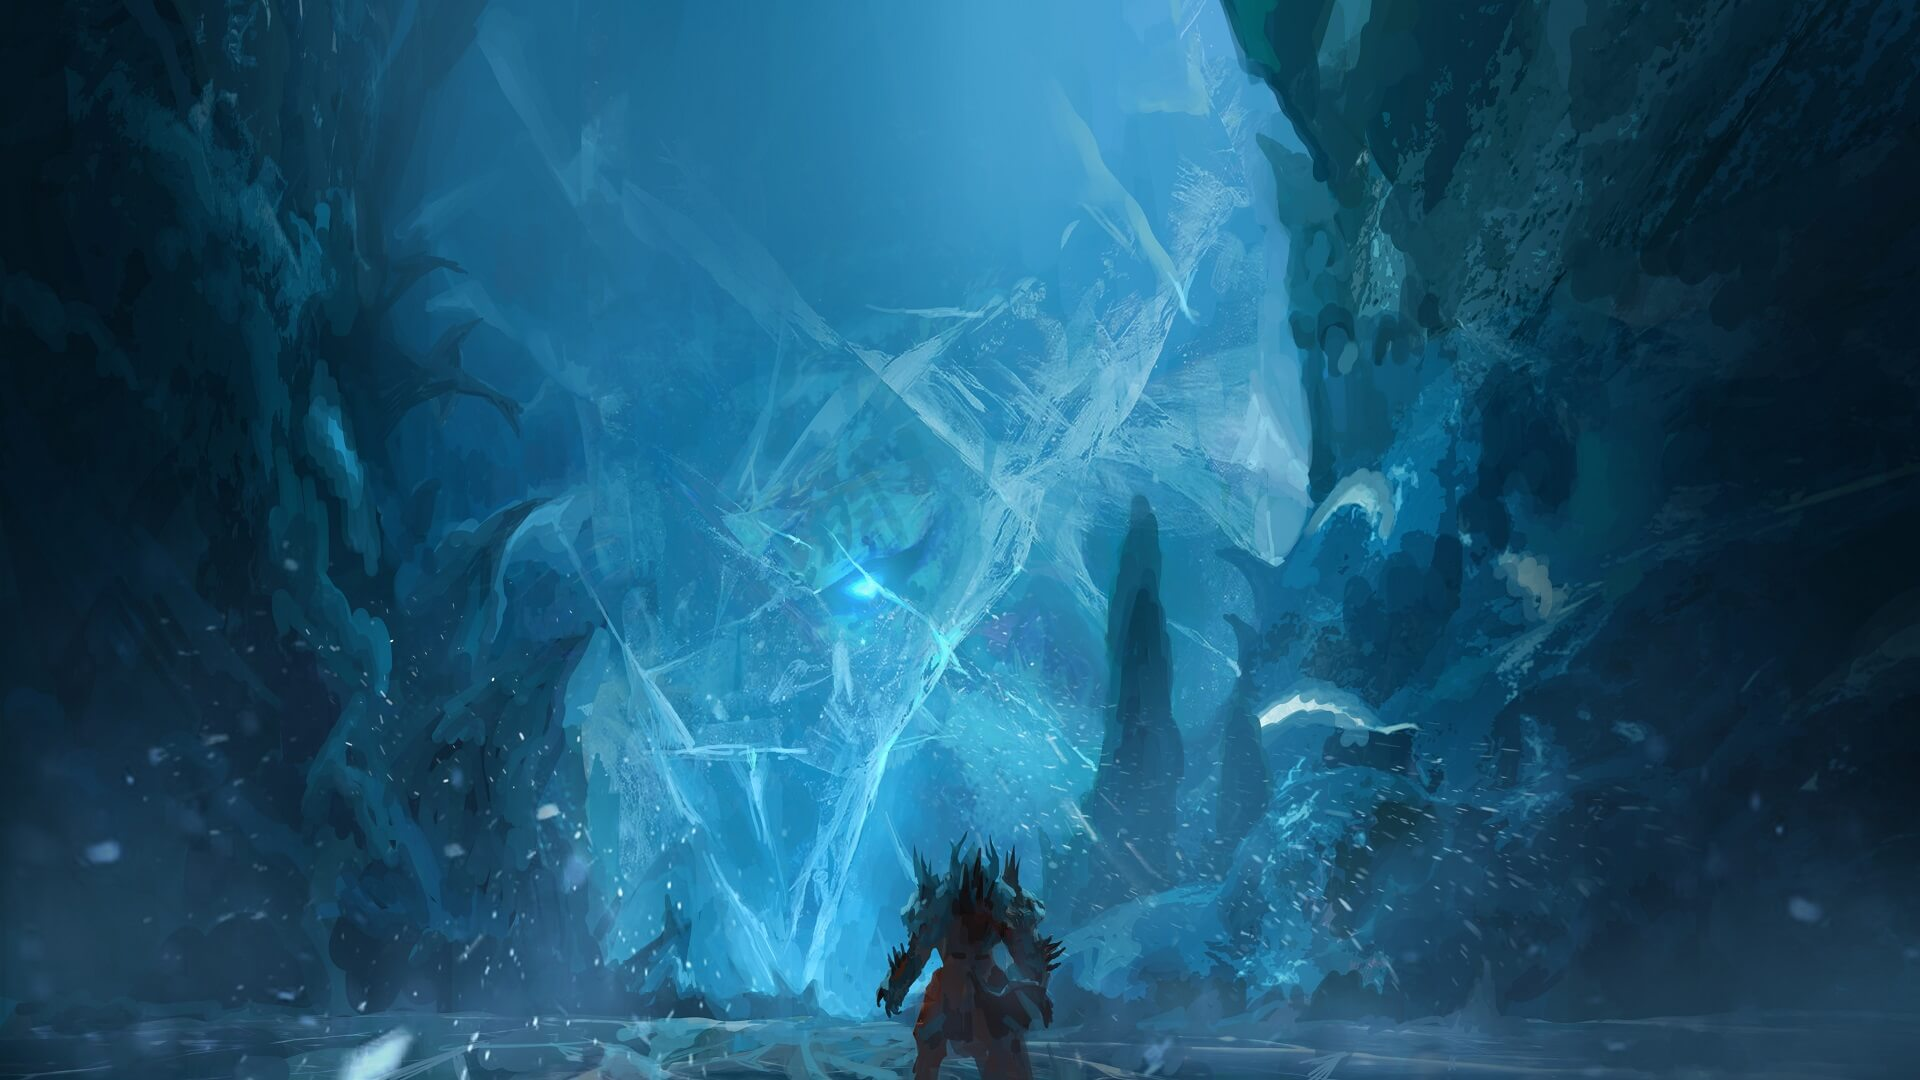 Guild Wars 2 Jormag Rising Releases Without Voice Over